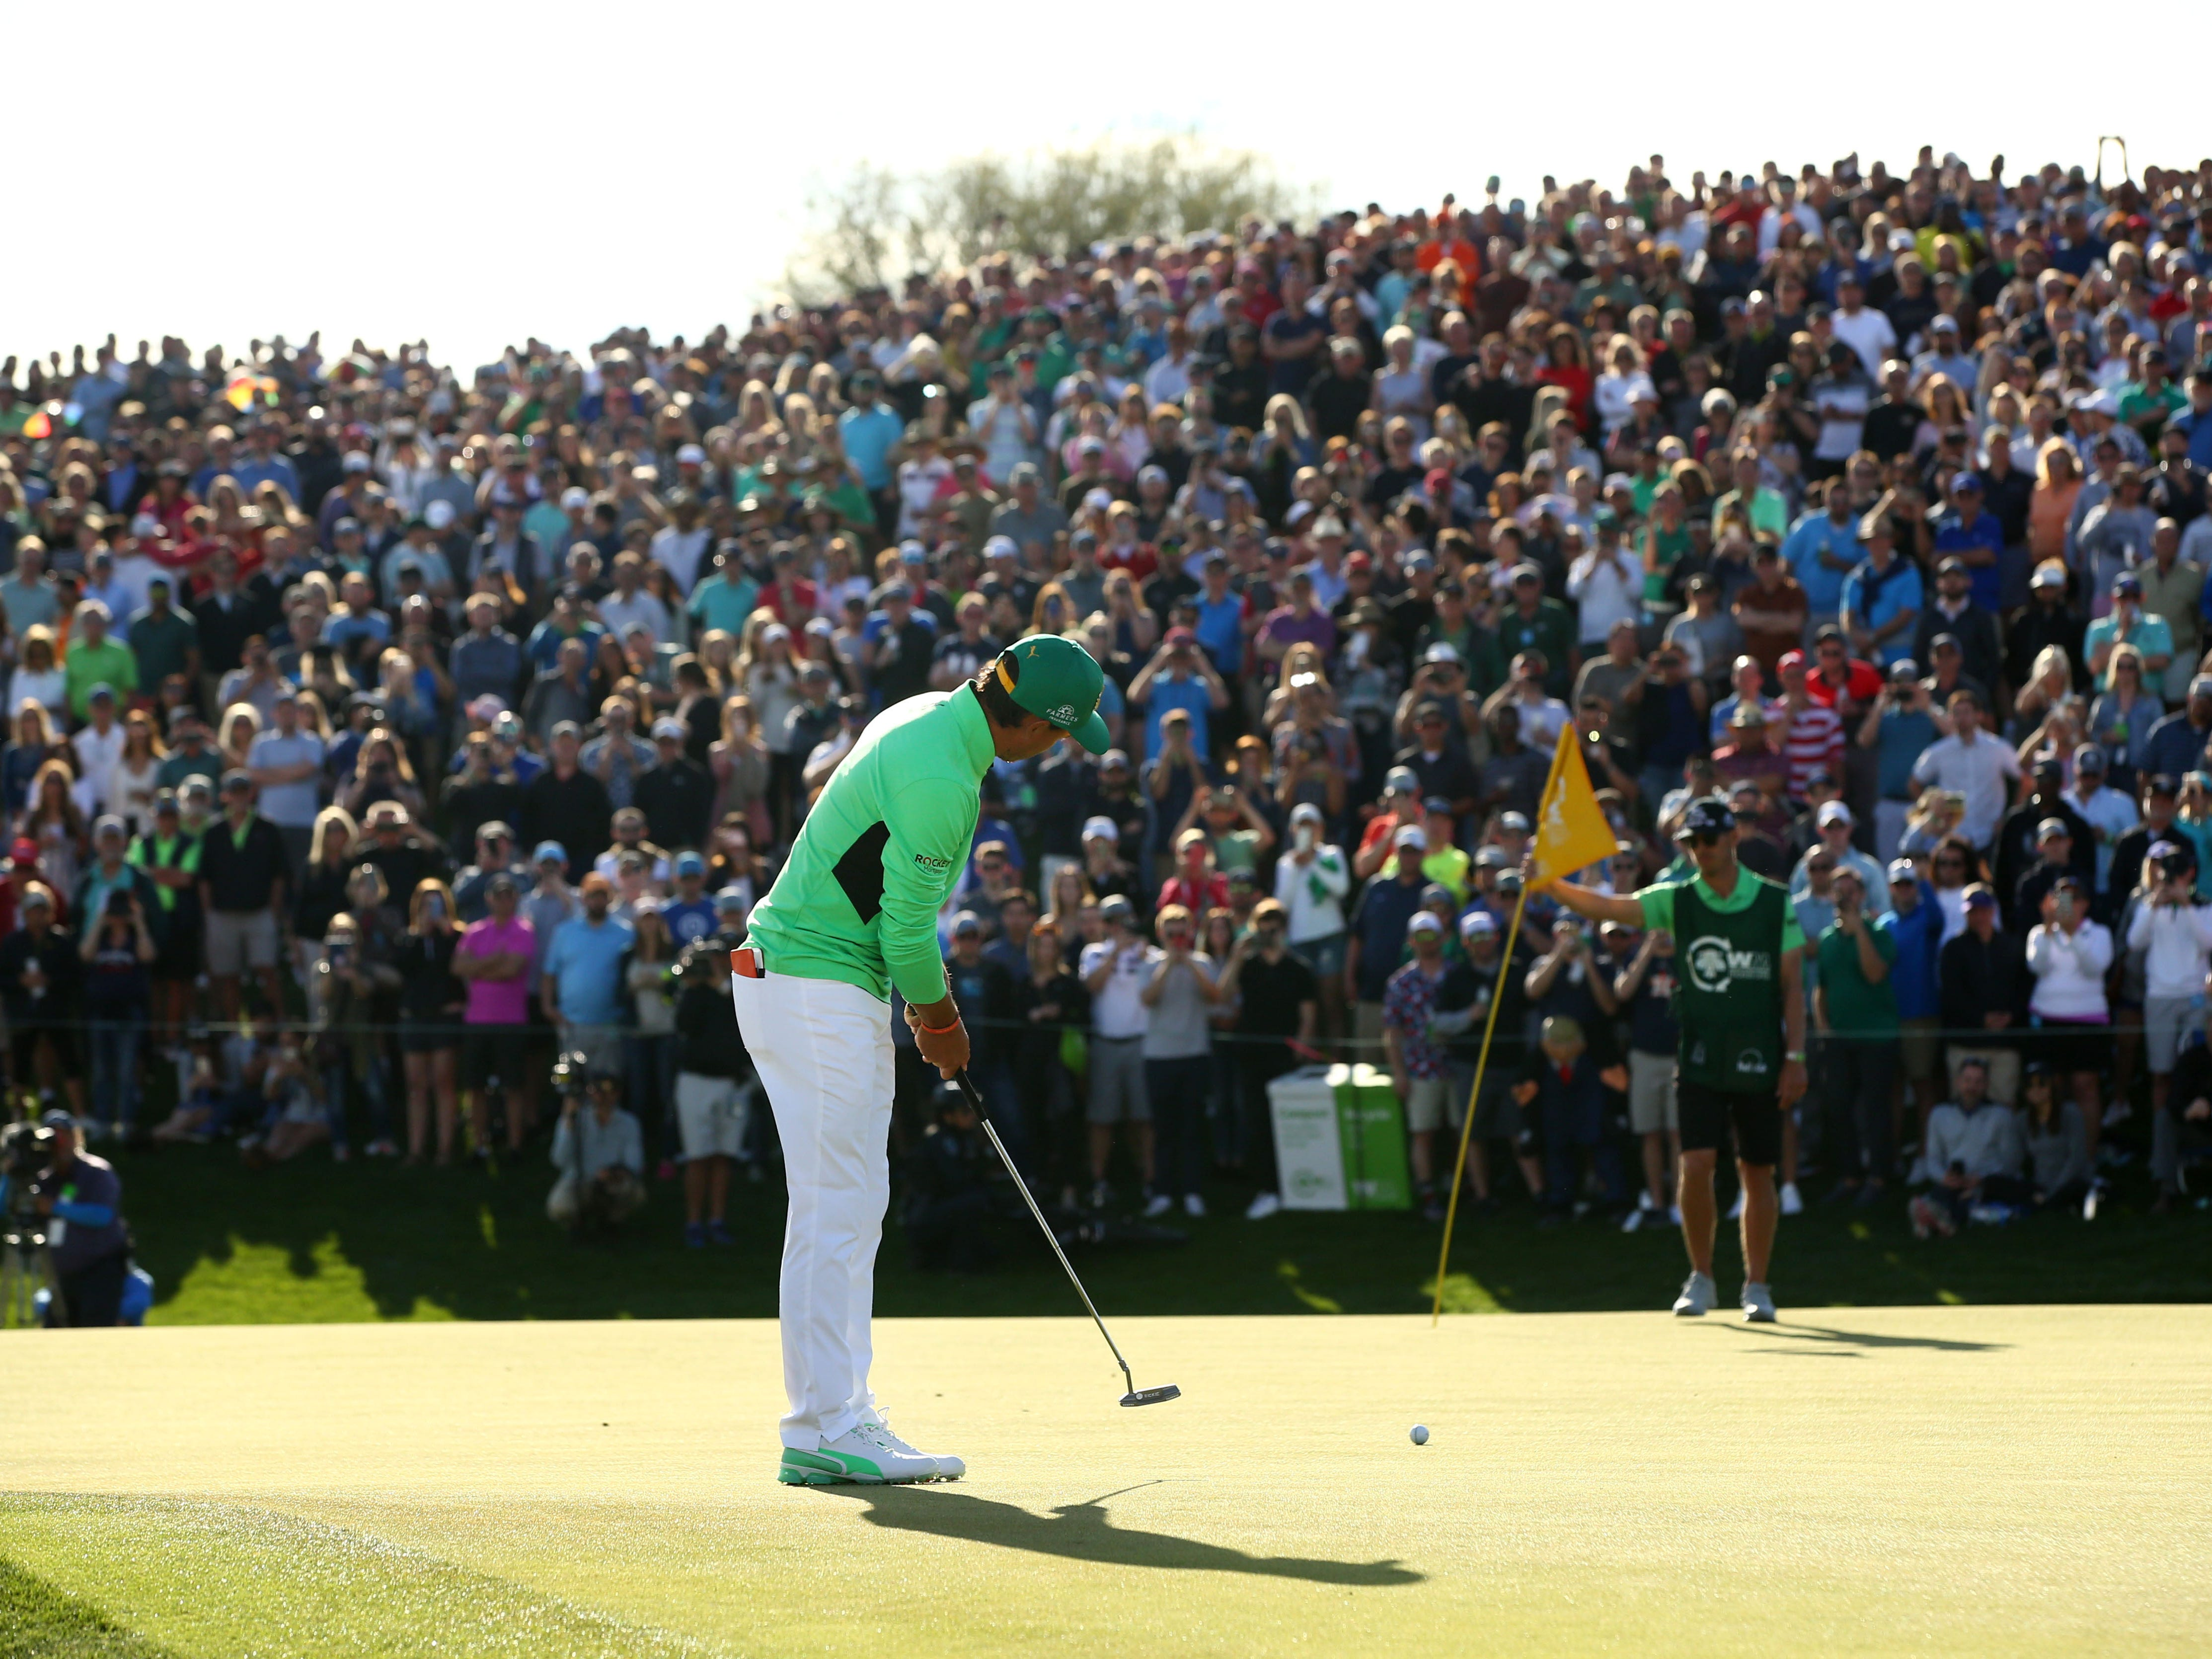 Rickie Fowler misses his birdie putt on the 18th hole during third round action on Feb. 2 during the Waste Management Phoenix Open at the TPC Scottsdale Stadium Course.